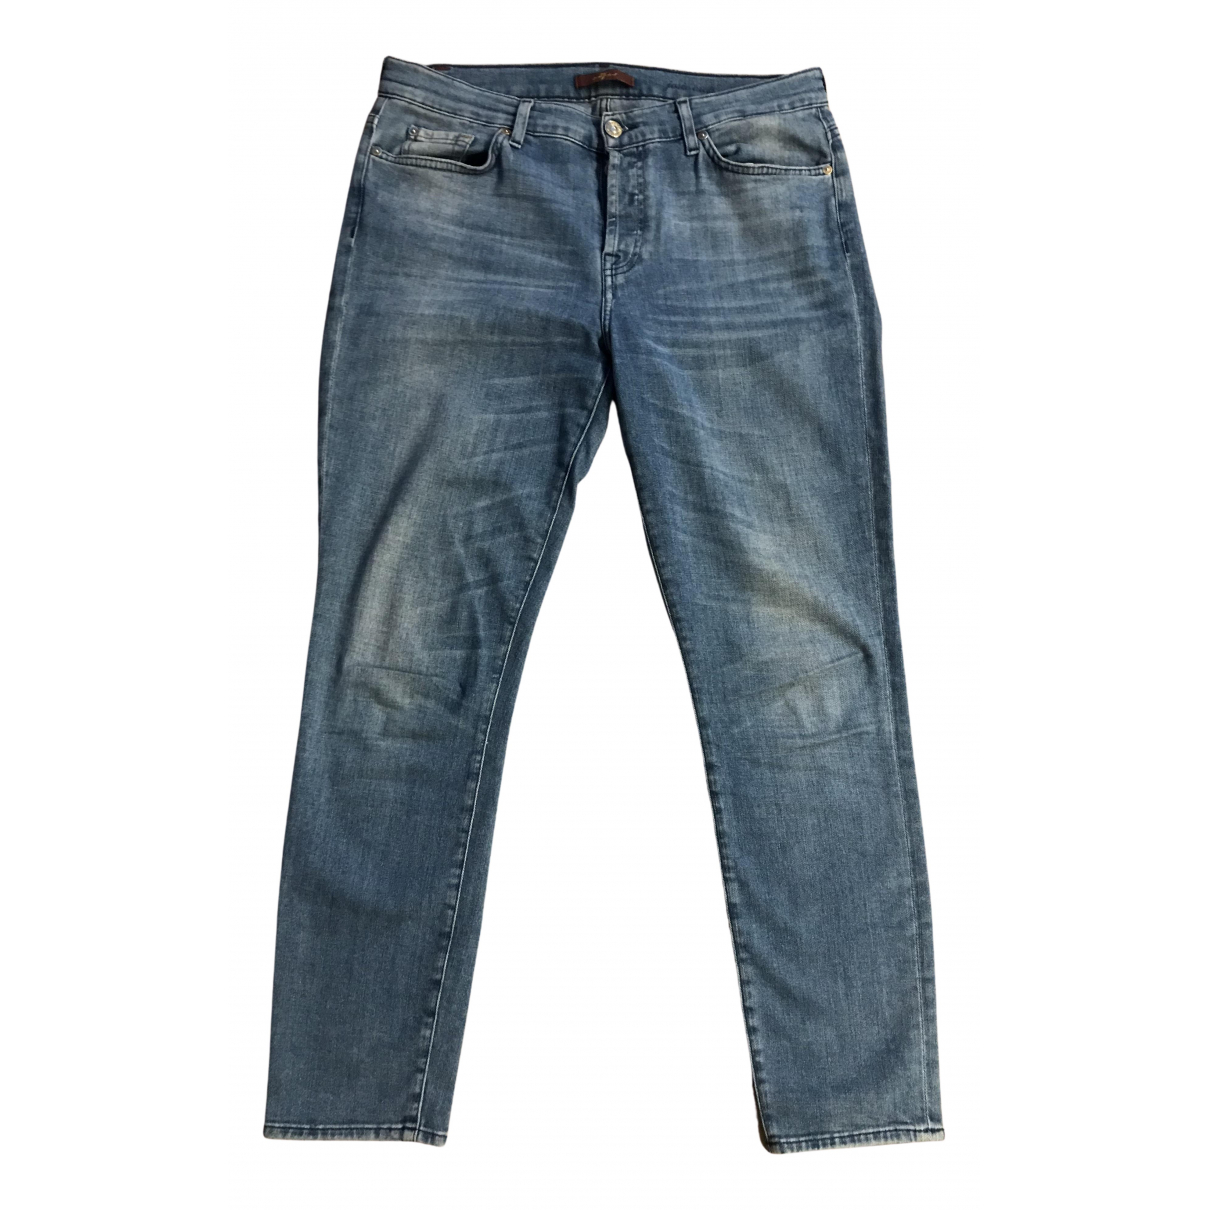 7 For All Mankind N Blue Cotton - elasthane Jeans for Women 29 US